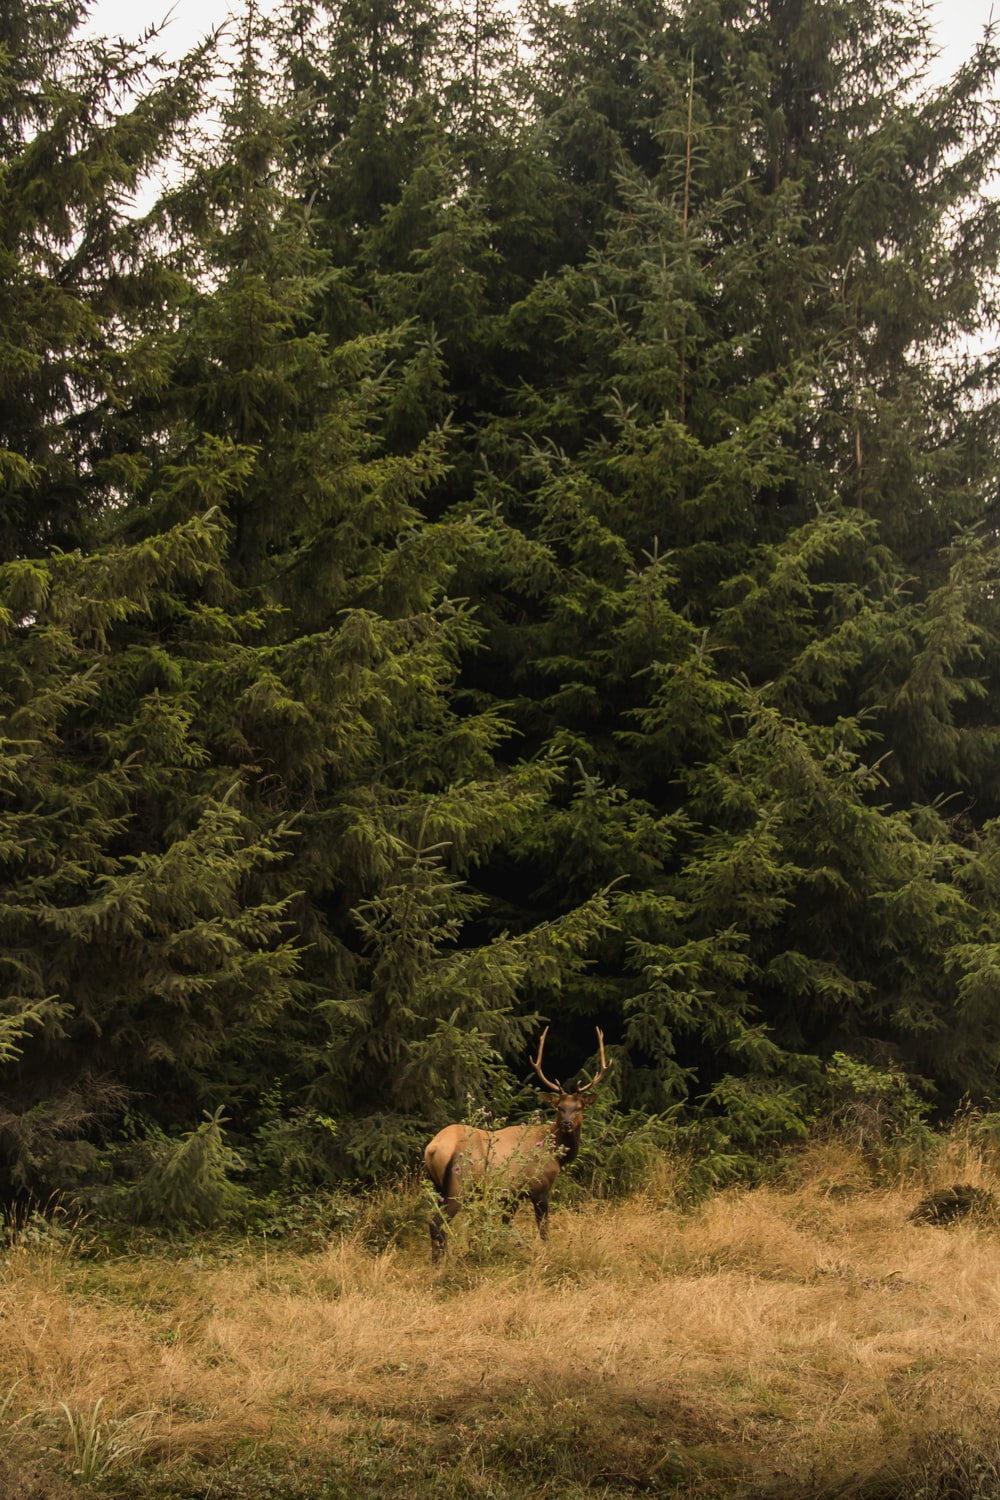 deer near trees during day